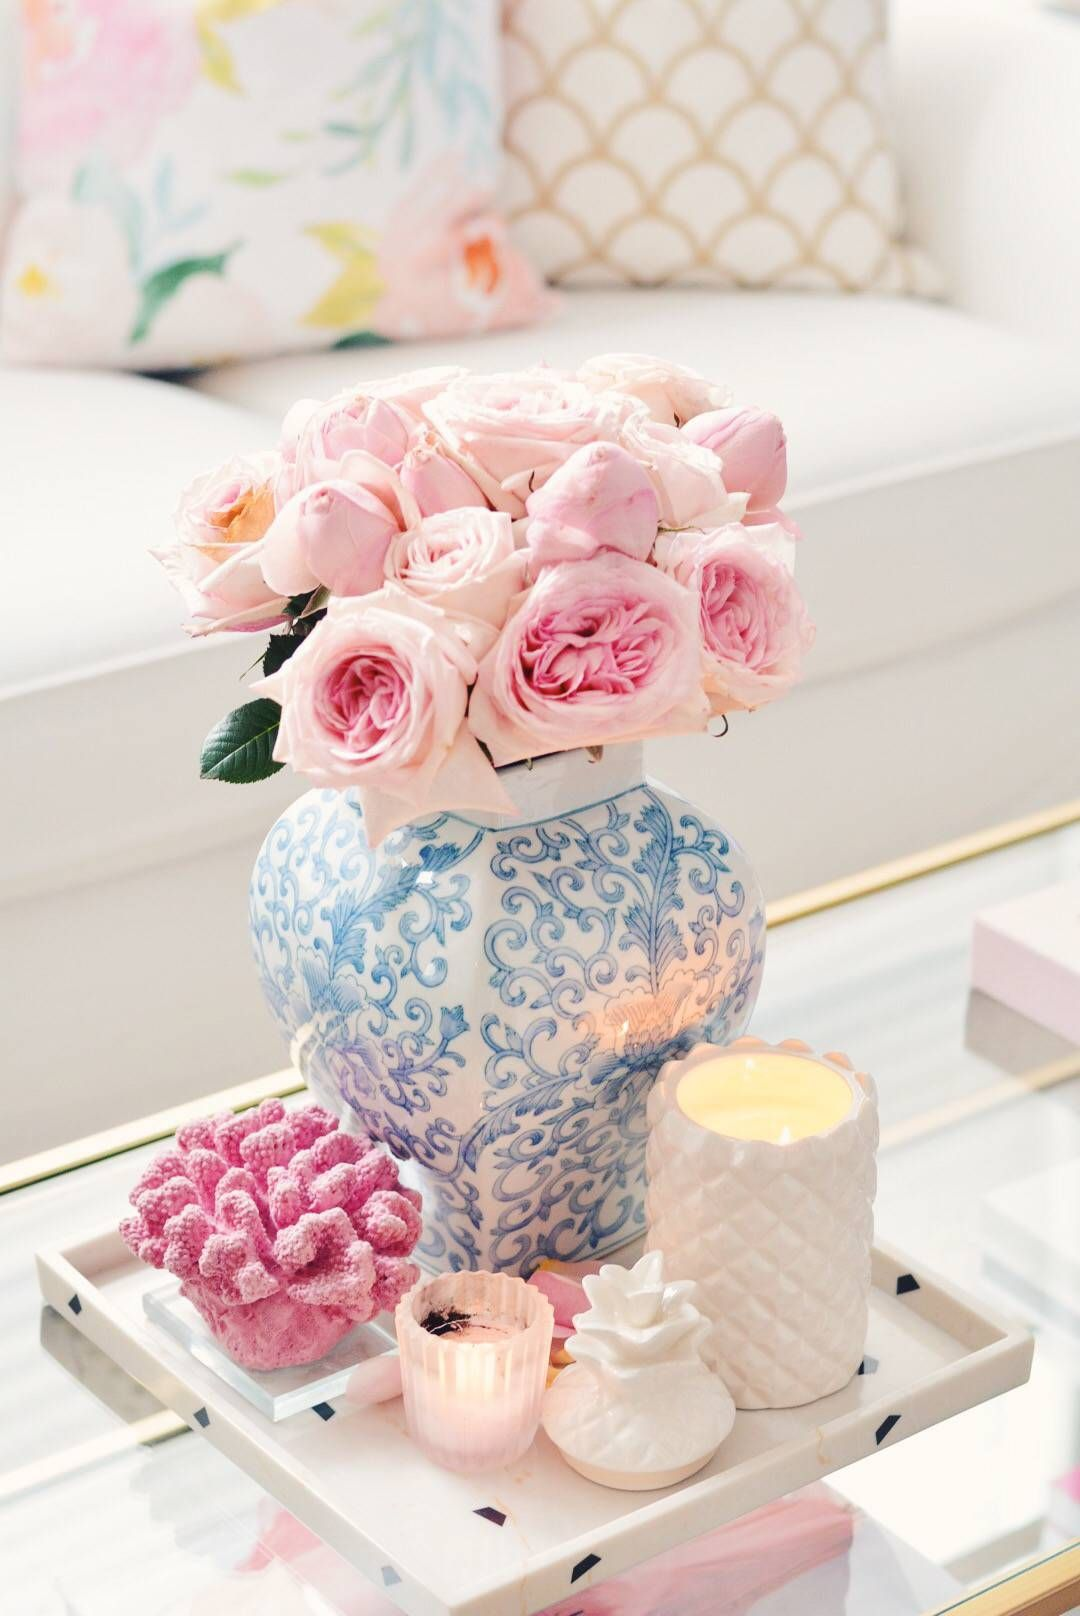 around the house: spring decor updates | spring and house